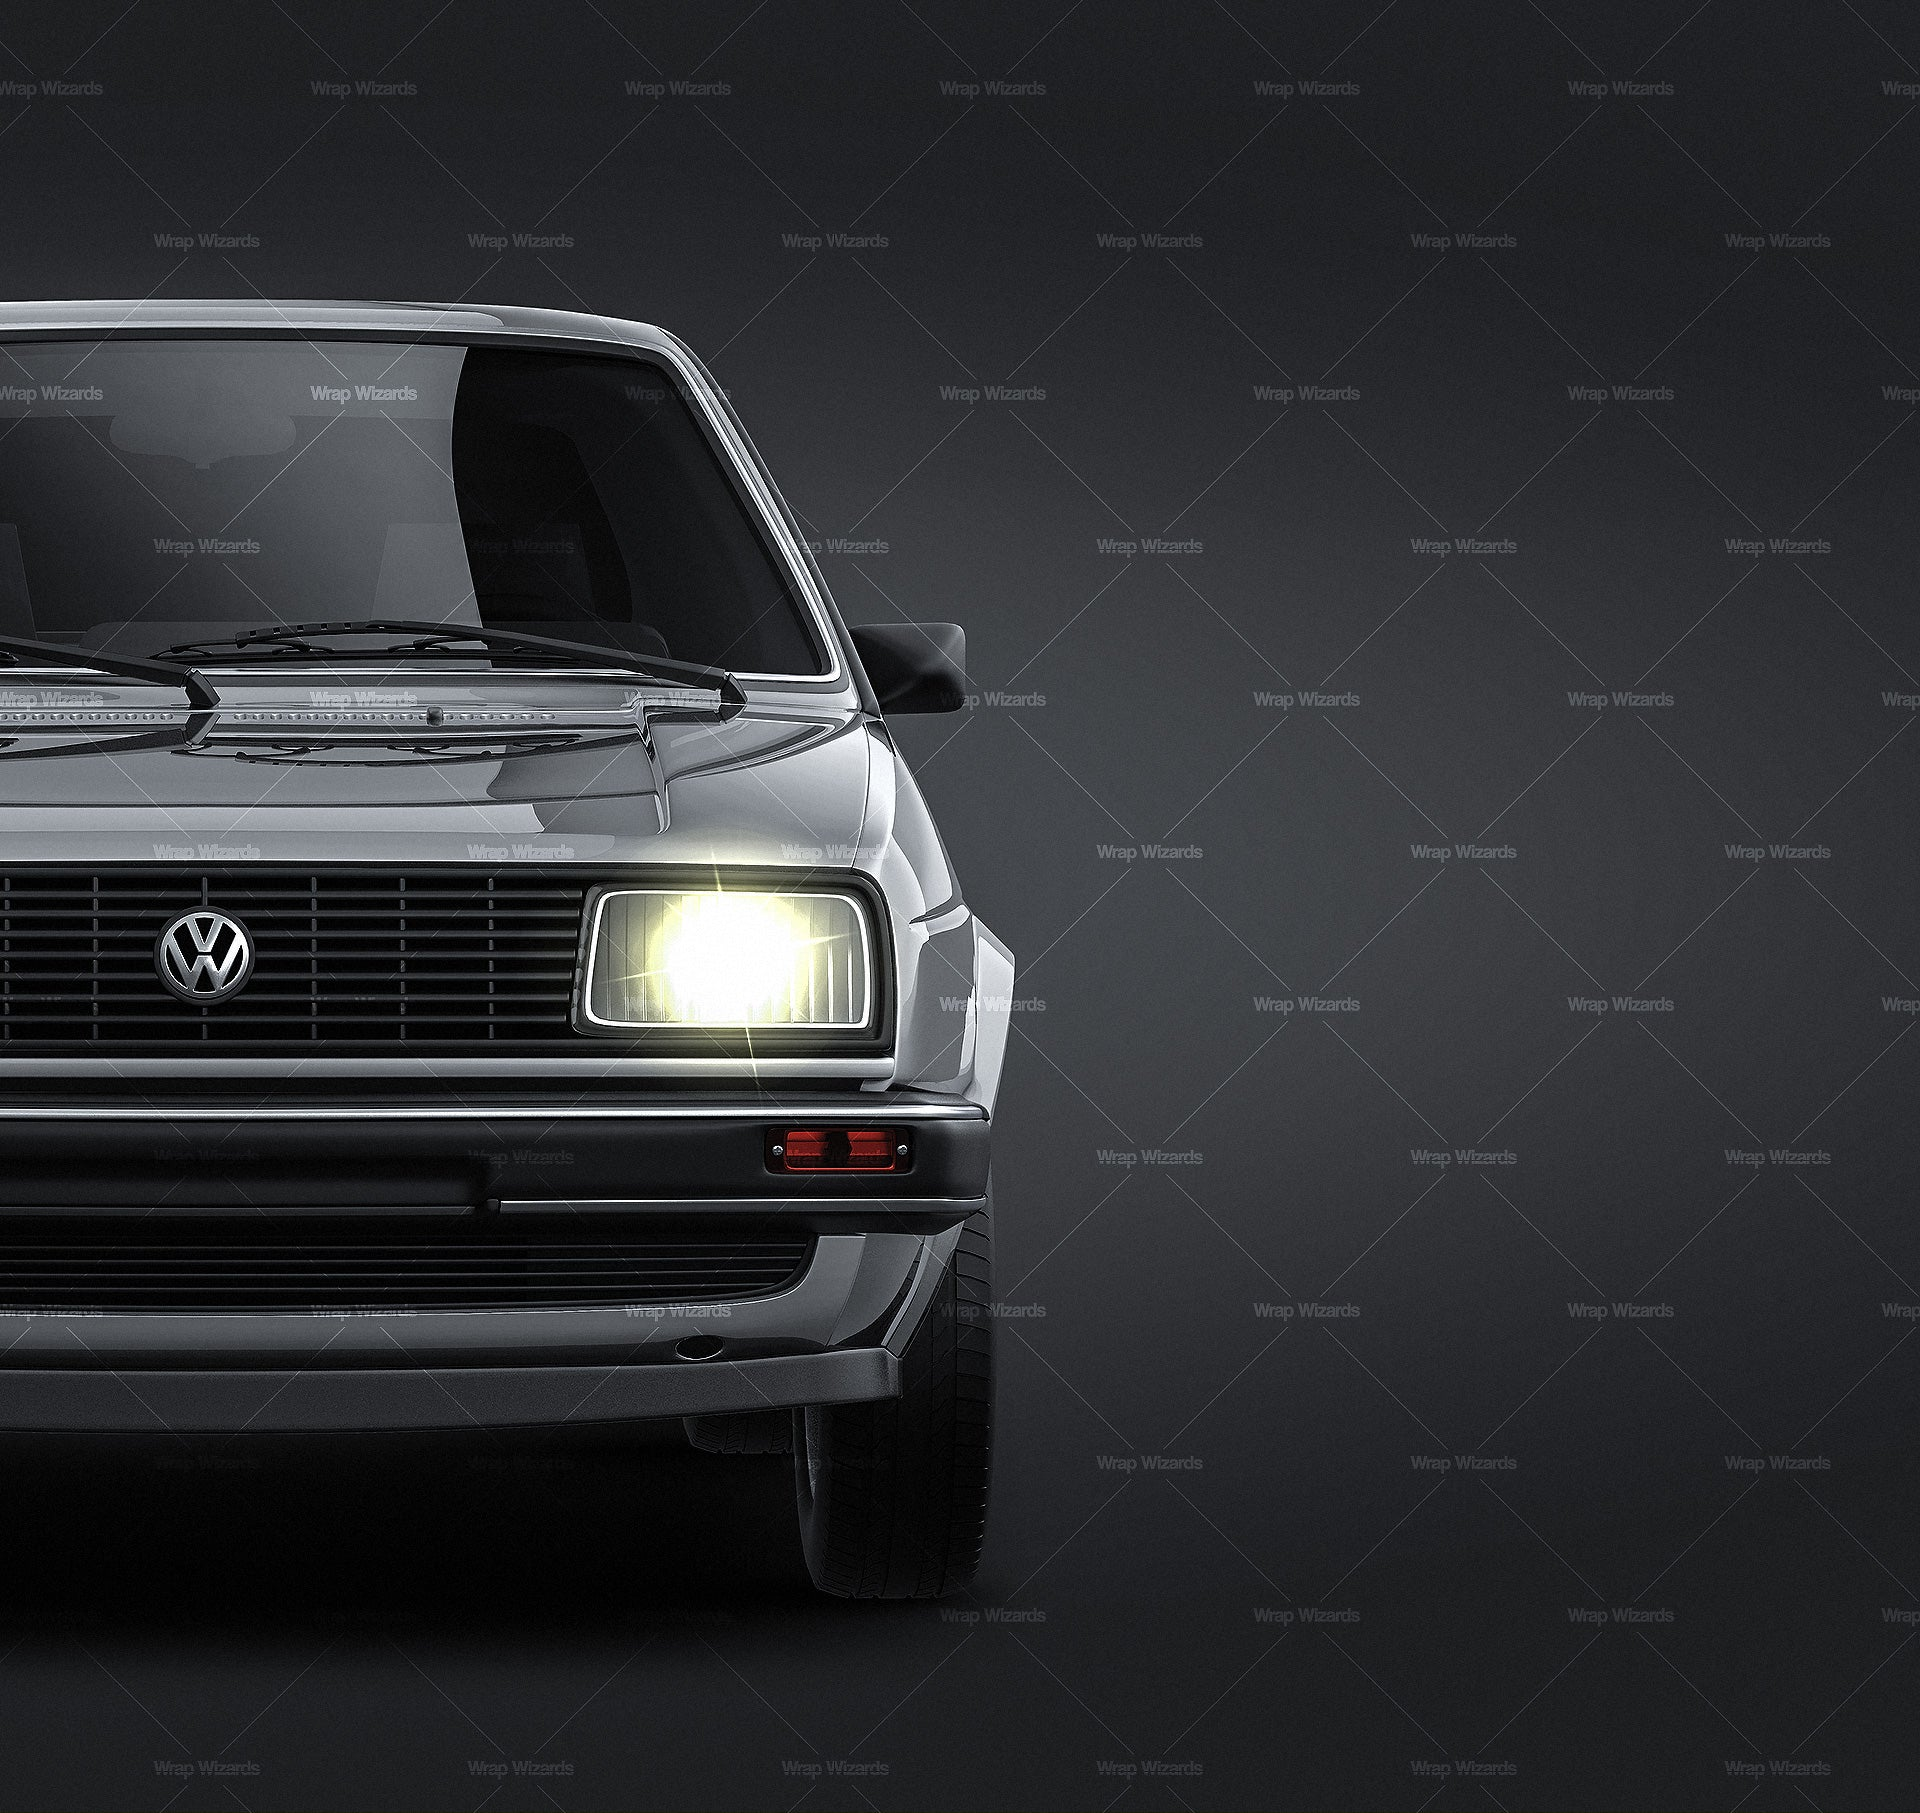 Volkswagen Jetta 1984 all sides Car Mockup Template.psd